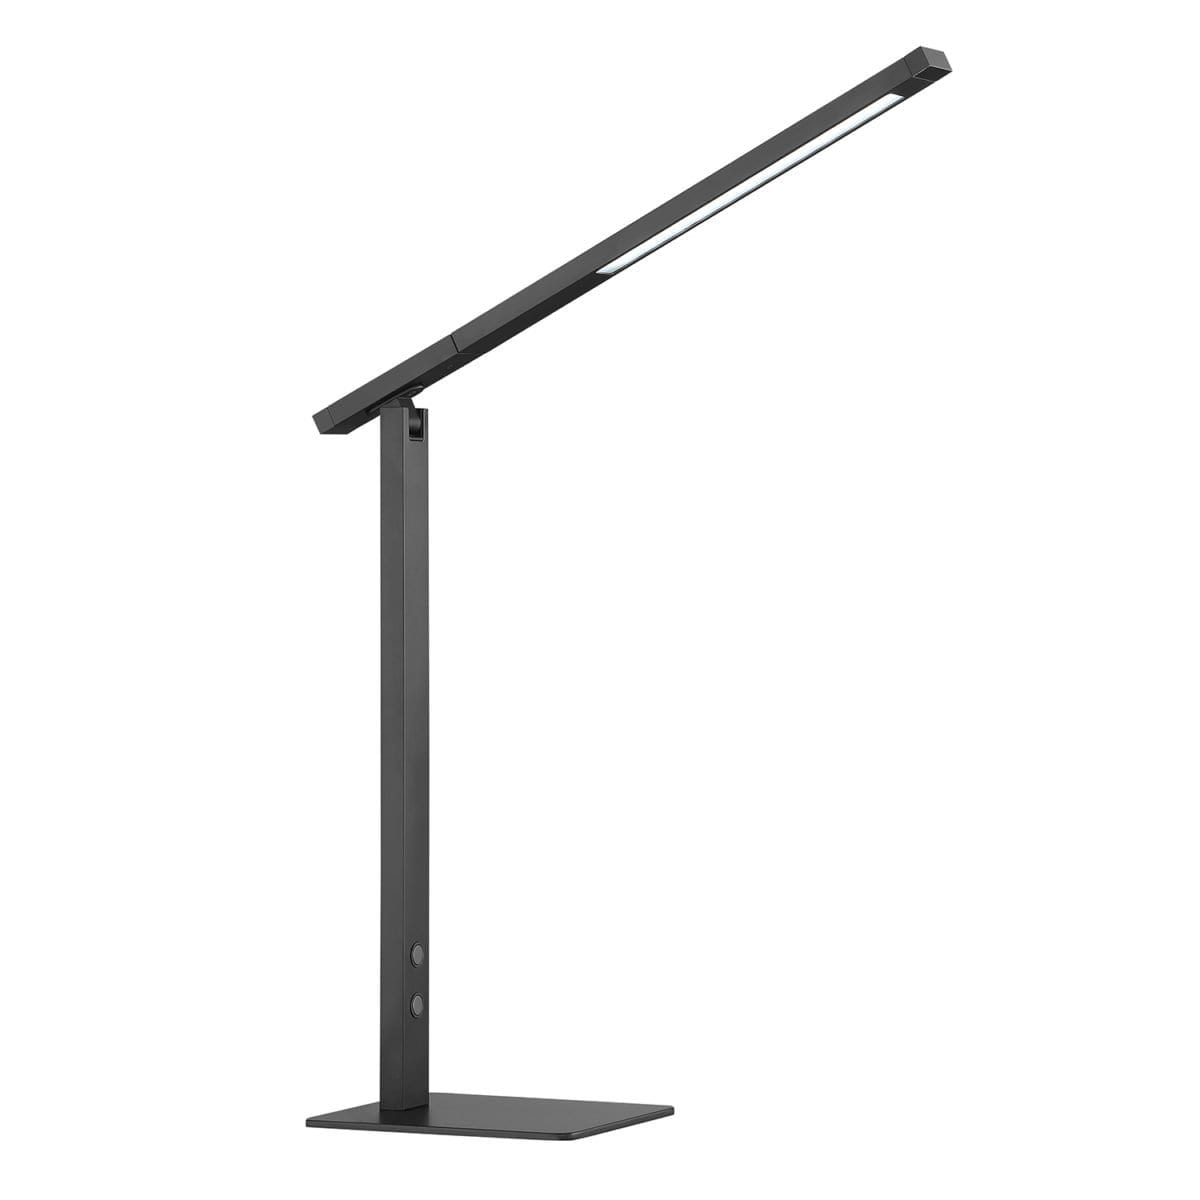 148 PTL 5018 BLK LED Table Lamp available in  Black or Silver Regular Price $174.99 Sale Price $122.99